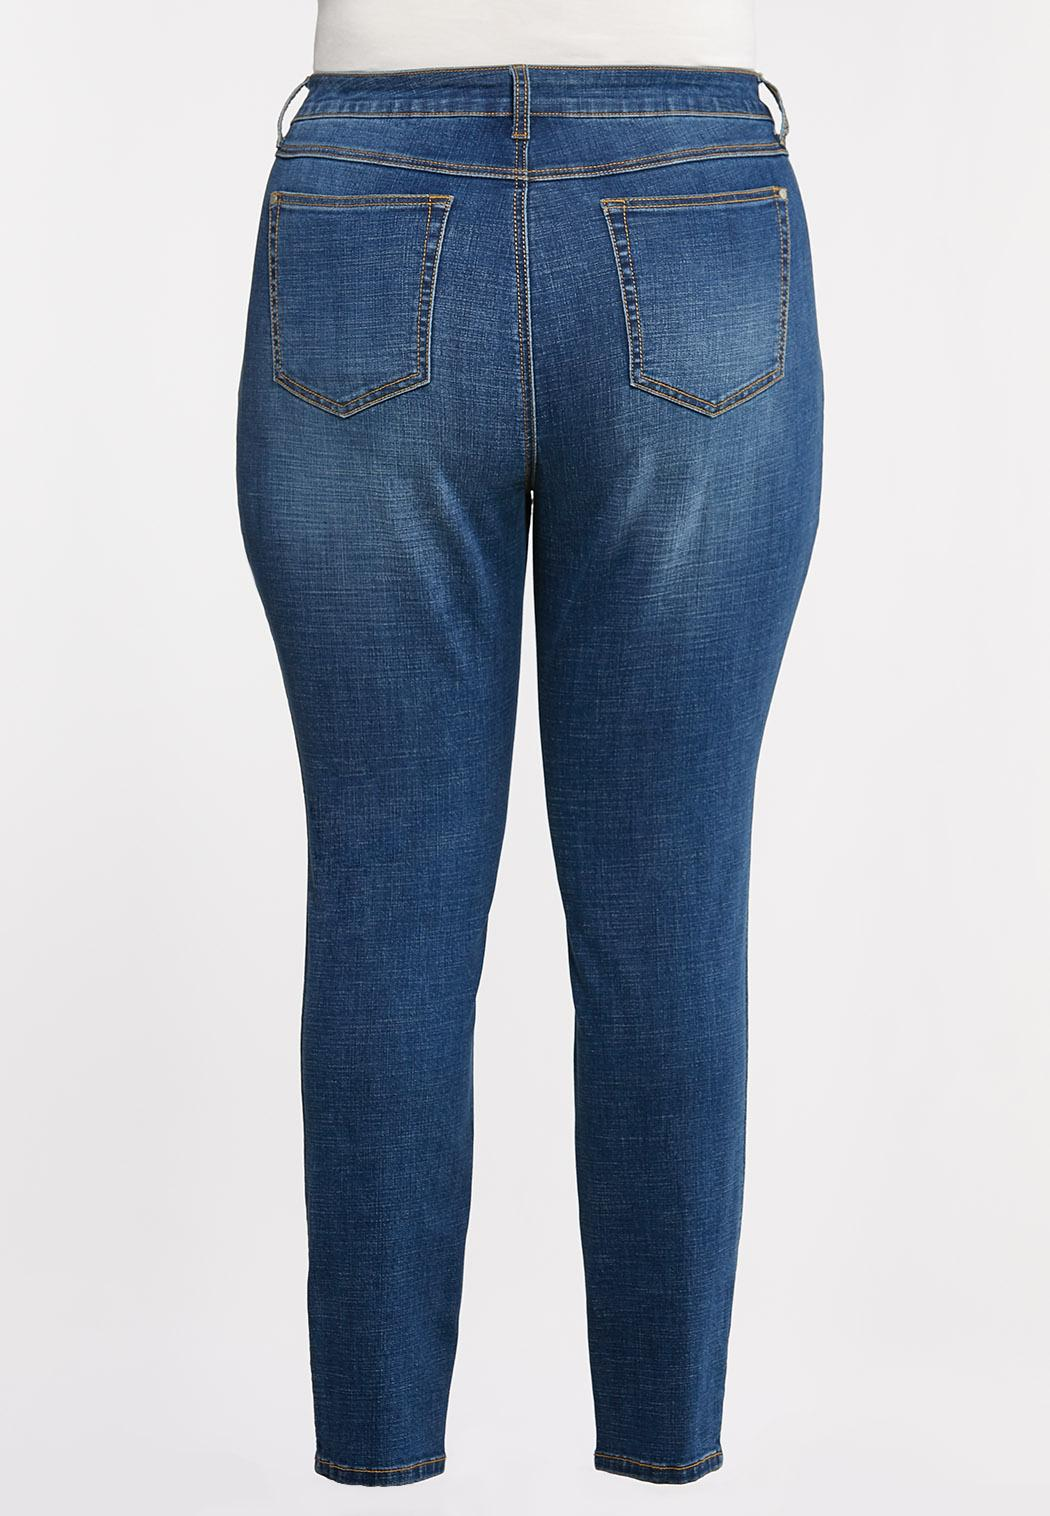 Plus Size High-Rise Skinny Jeans (Item #44333610)